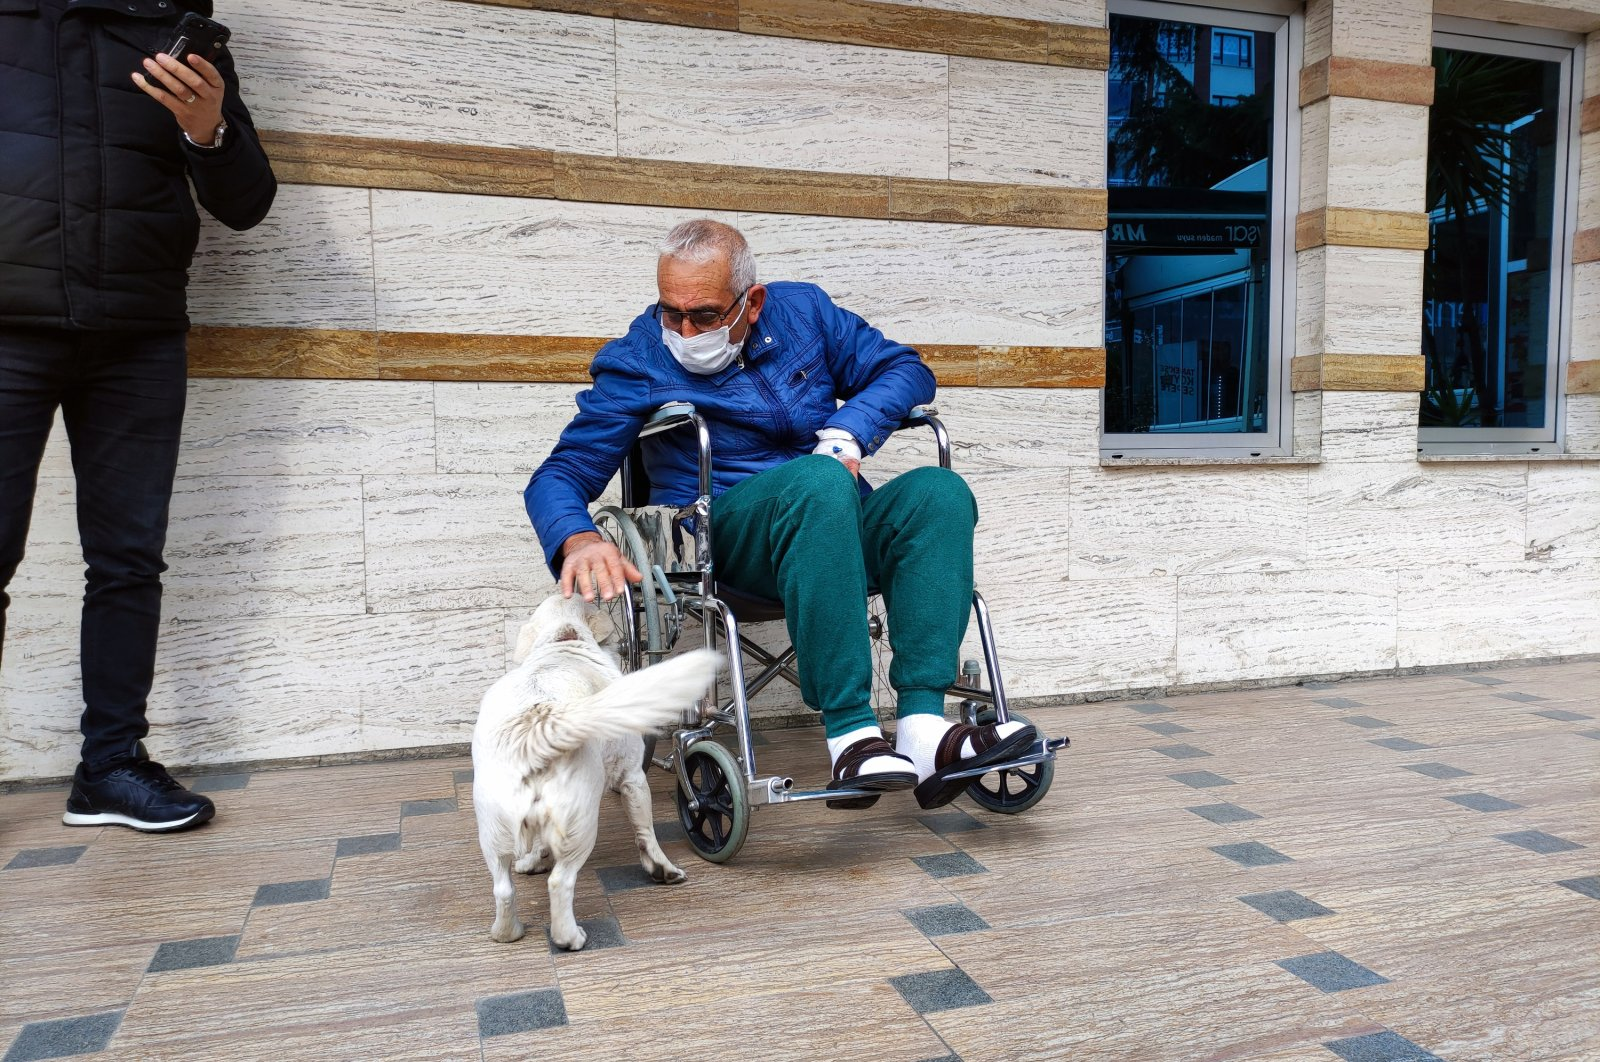 Cemal Şentürk with his dog Boncuk at the hospital in Trabzon, northern Turkey, Jan. 19, 2021. (DHA Photo)